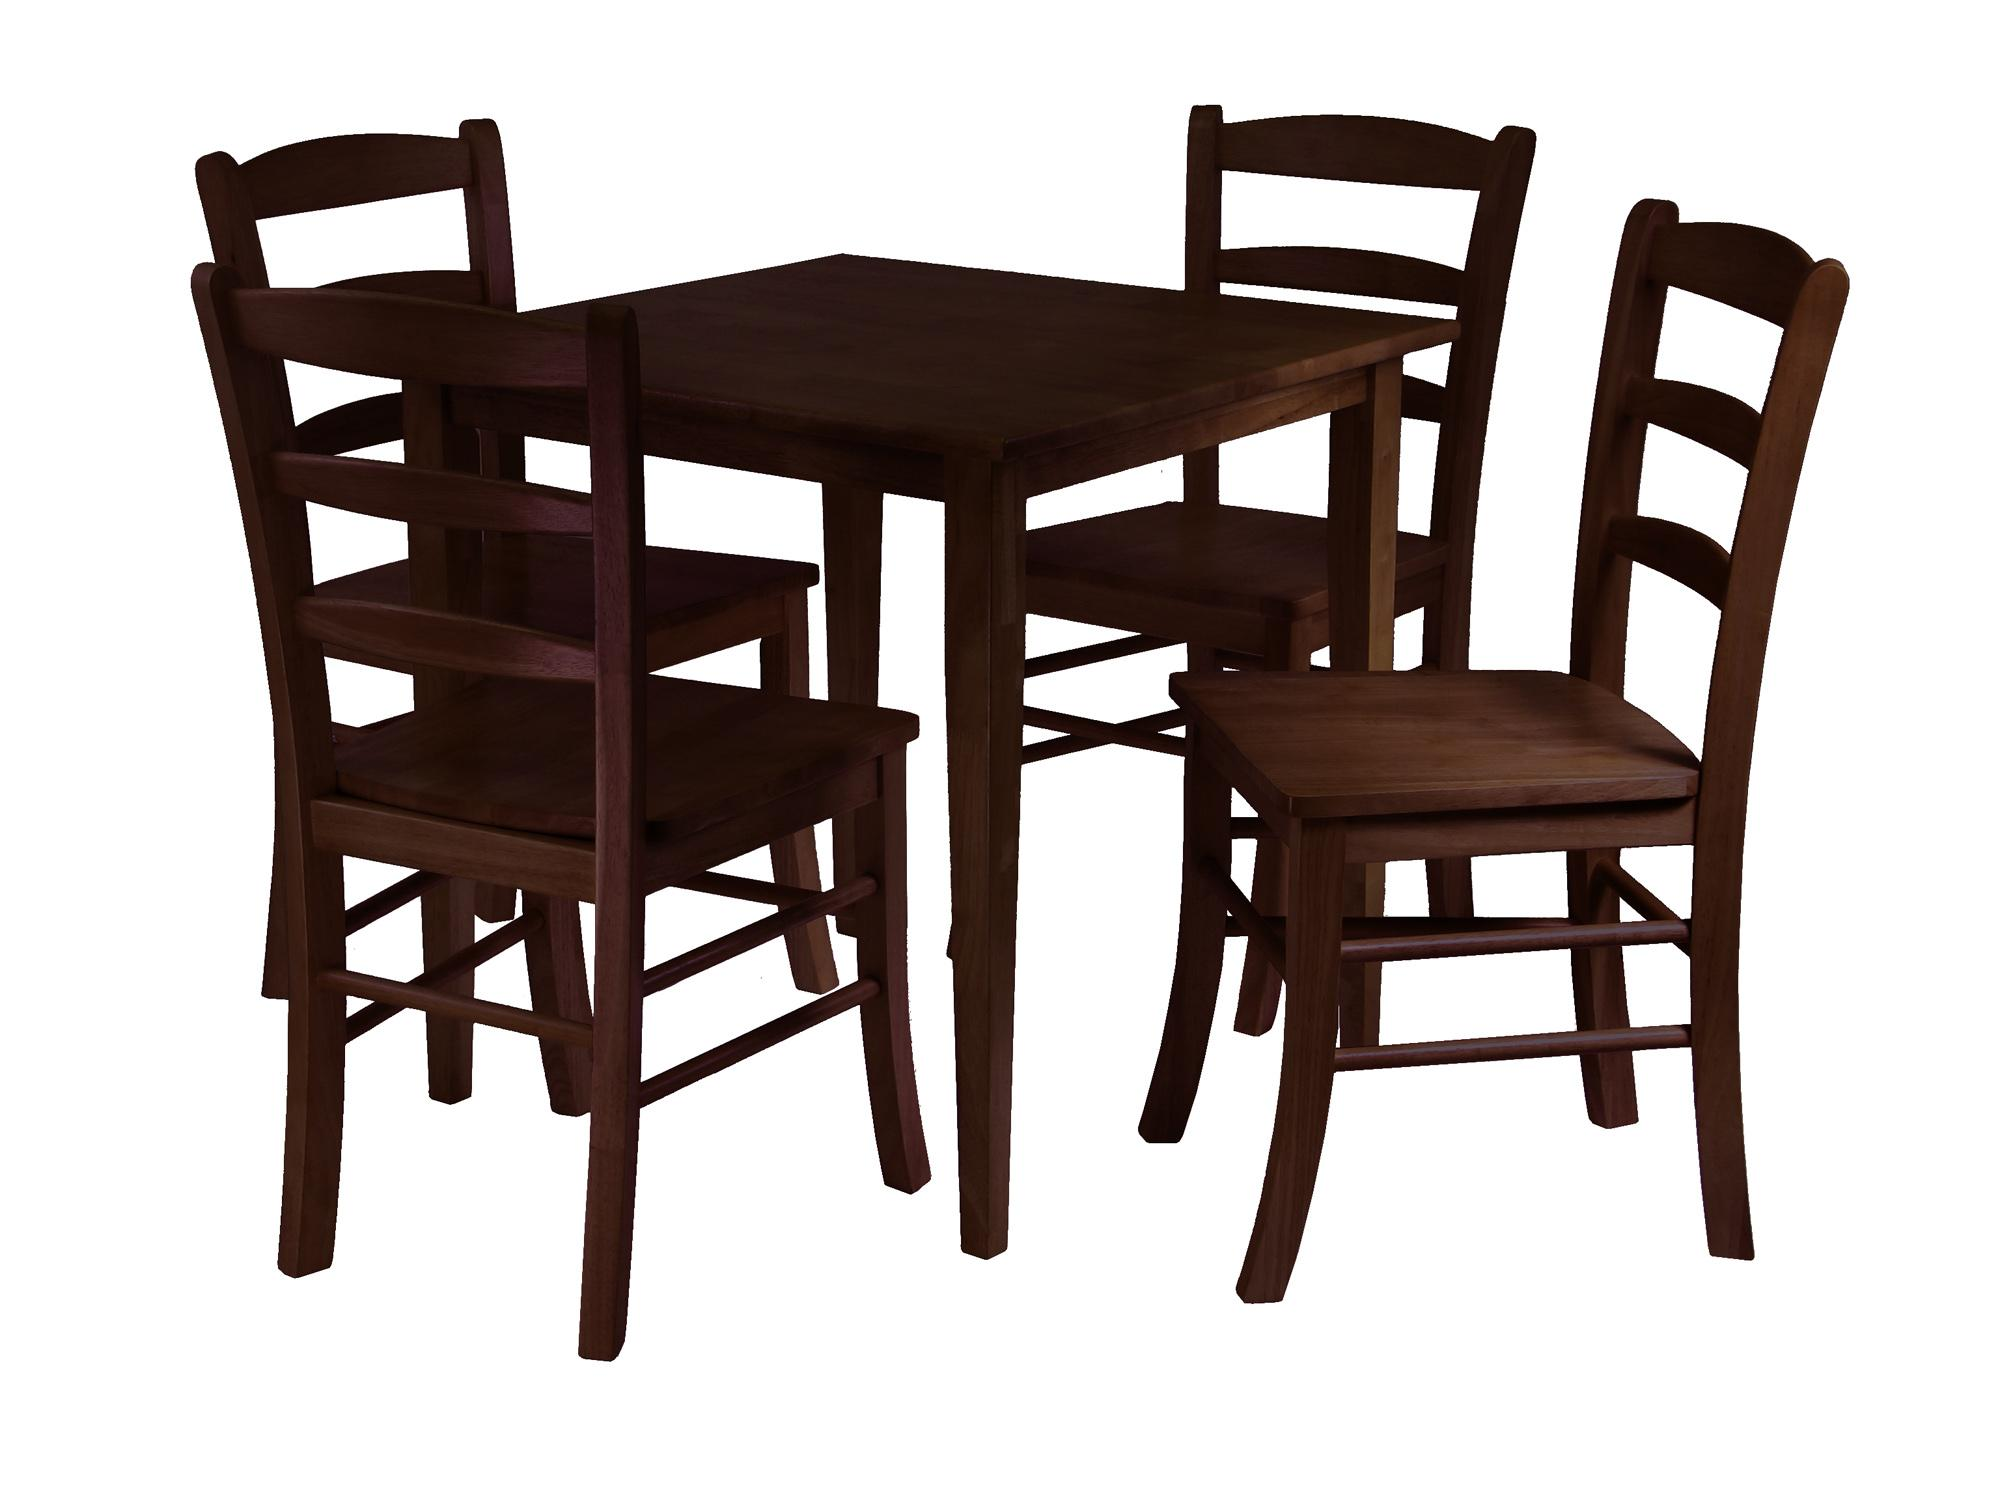 round dining tables for 4 chairs set eva furniture kitchen table chairs set Mirage Dining Table